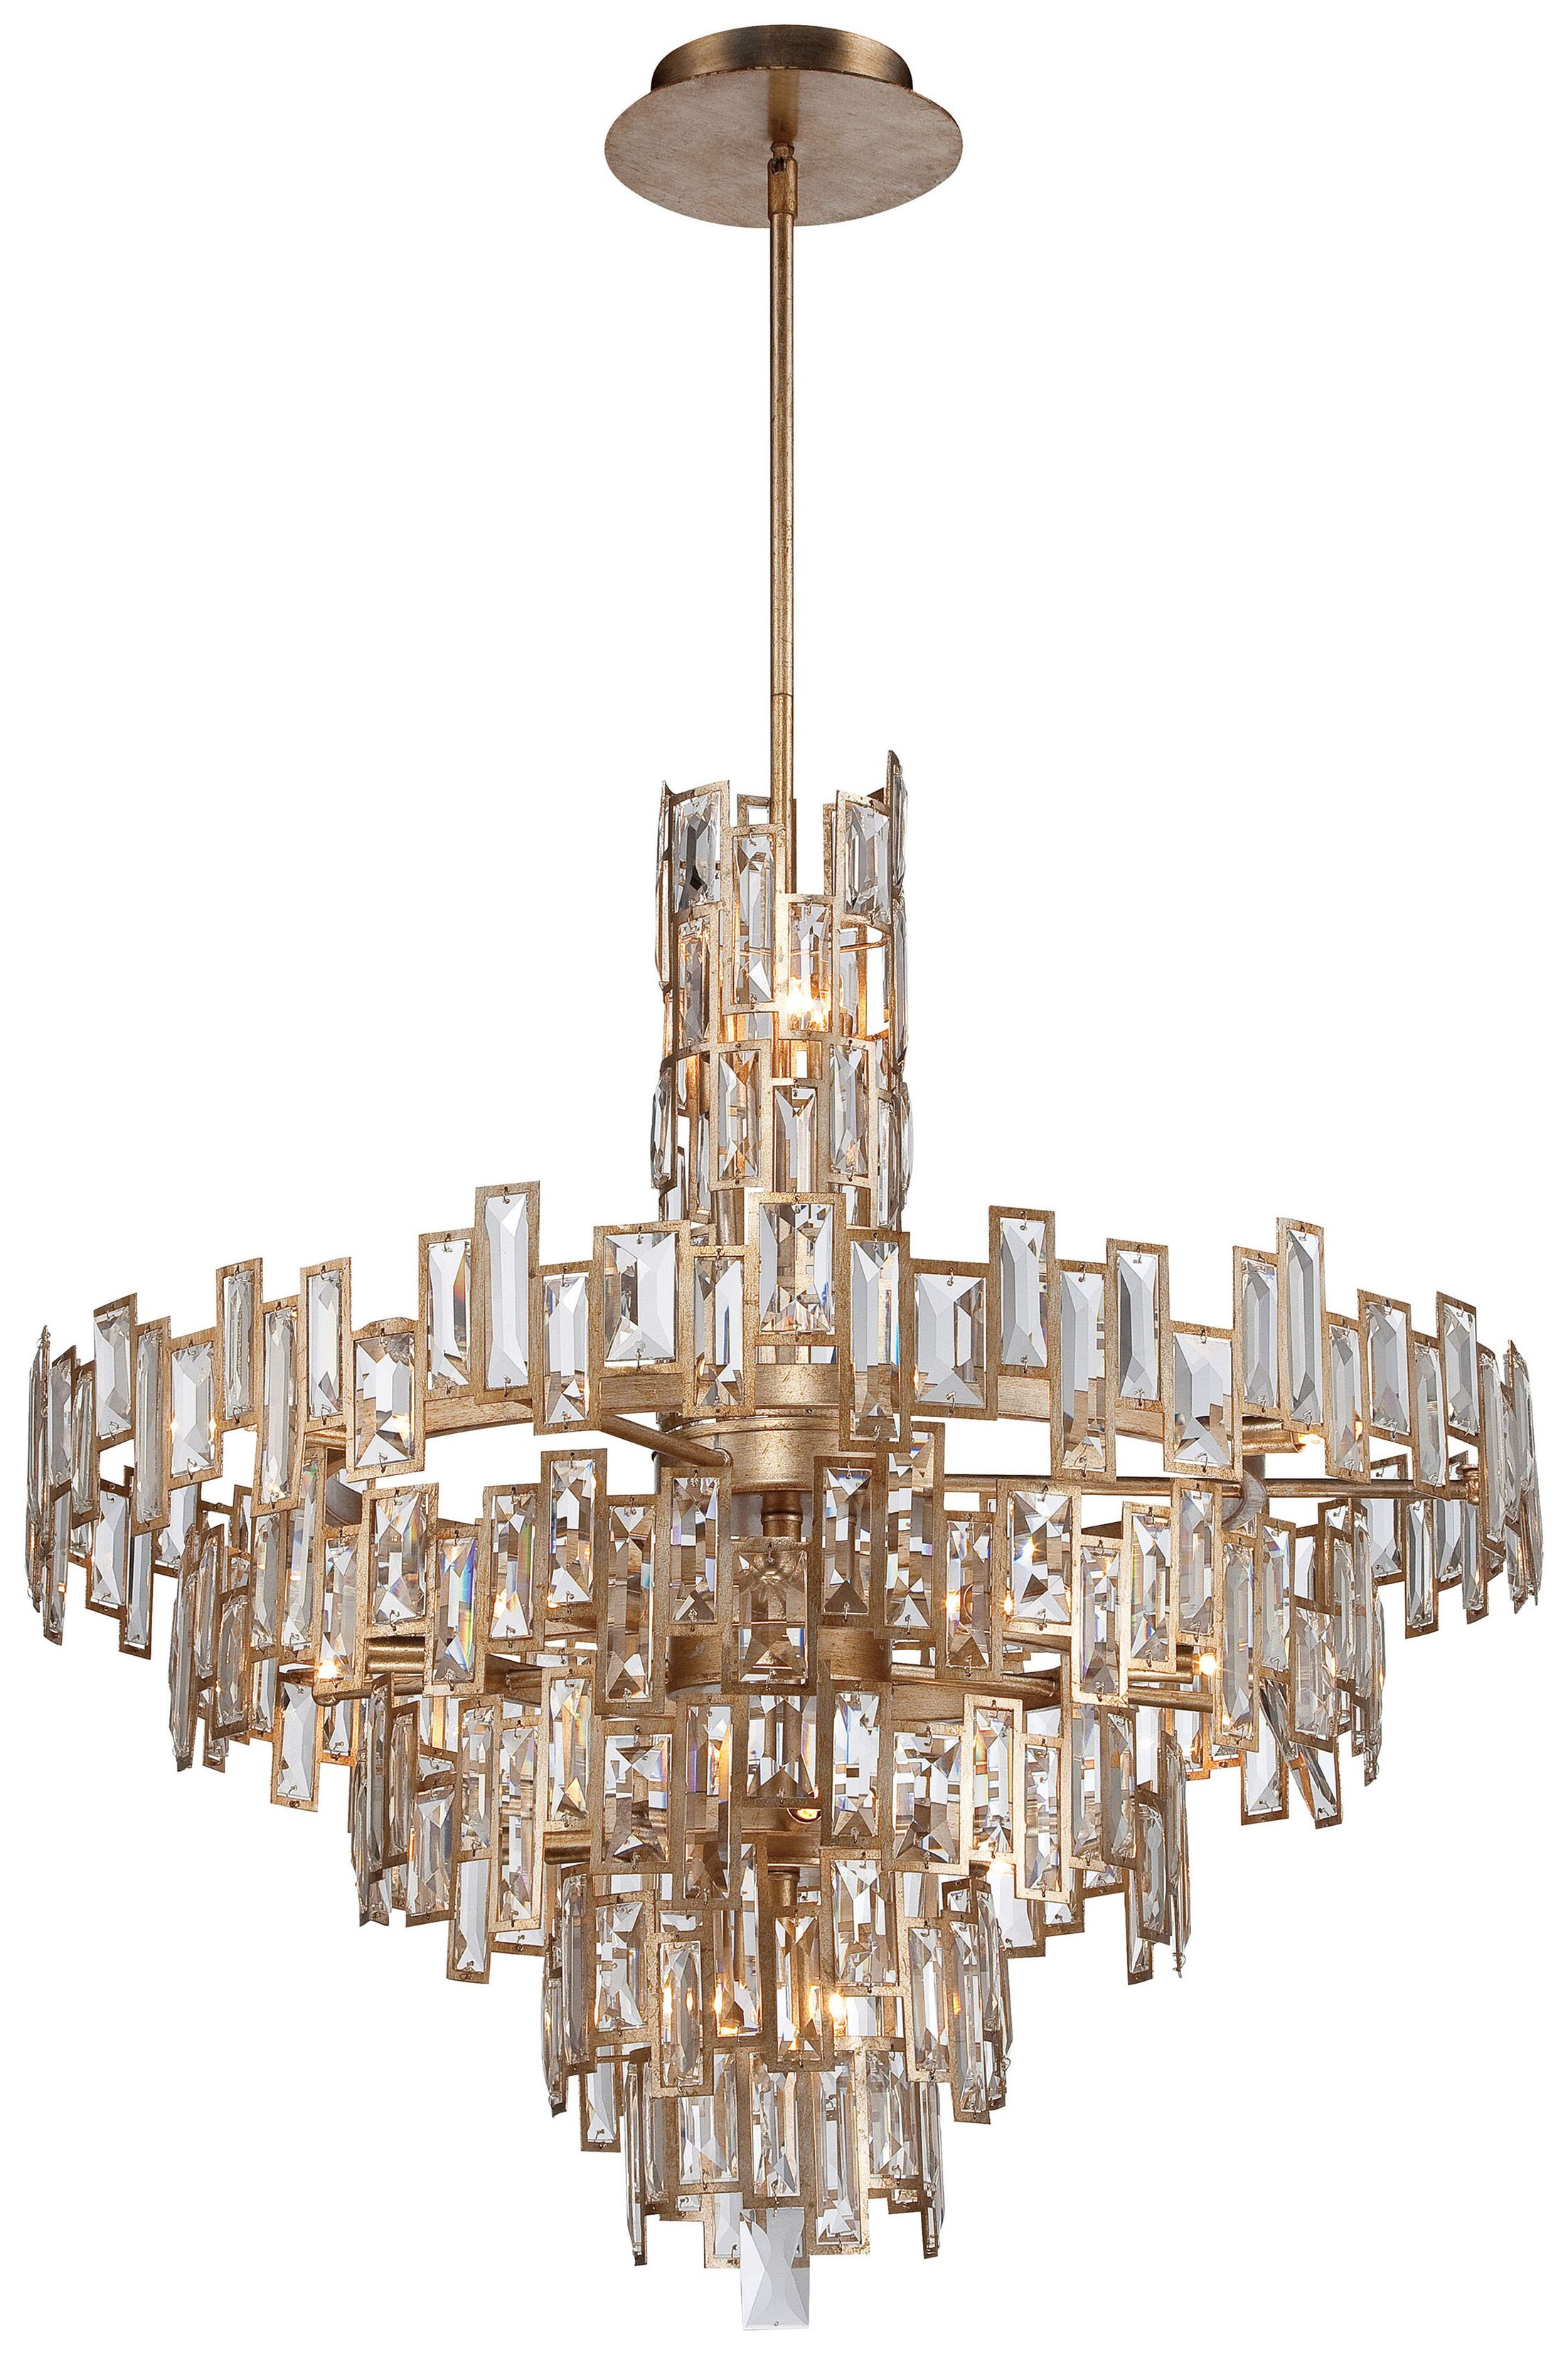 Bel Mondo 21-Light Chandelier